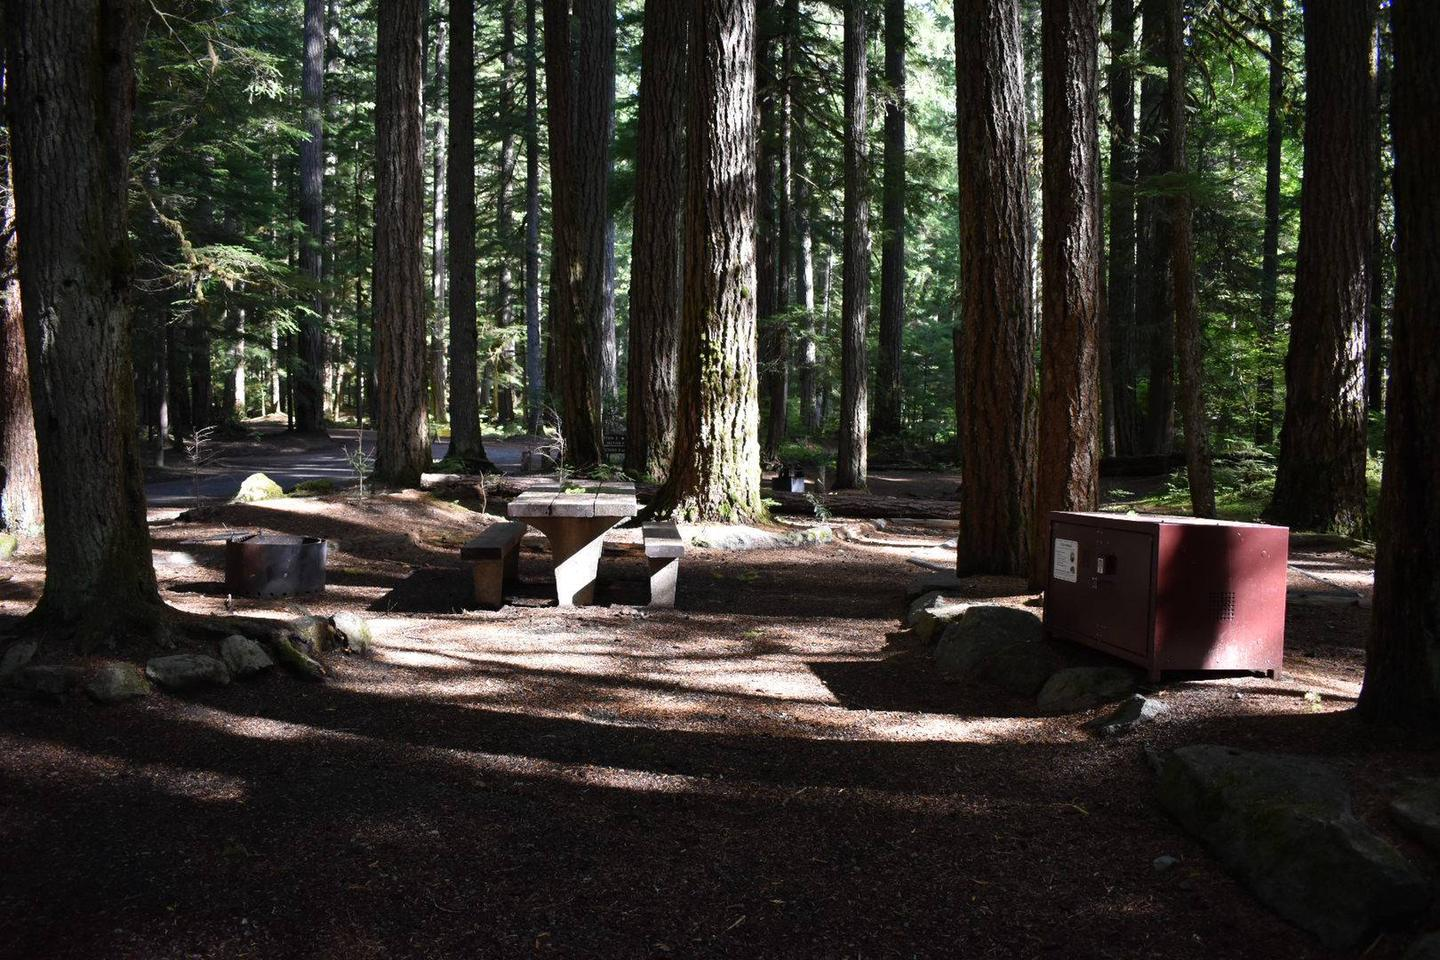 Ohanapecosh Campground - Site D020 AmenitiesCampers are provided with a picnic table, food storage box, and fire pit.